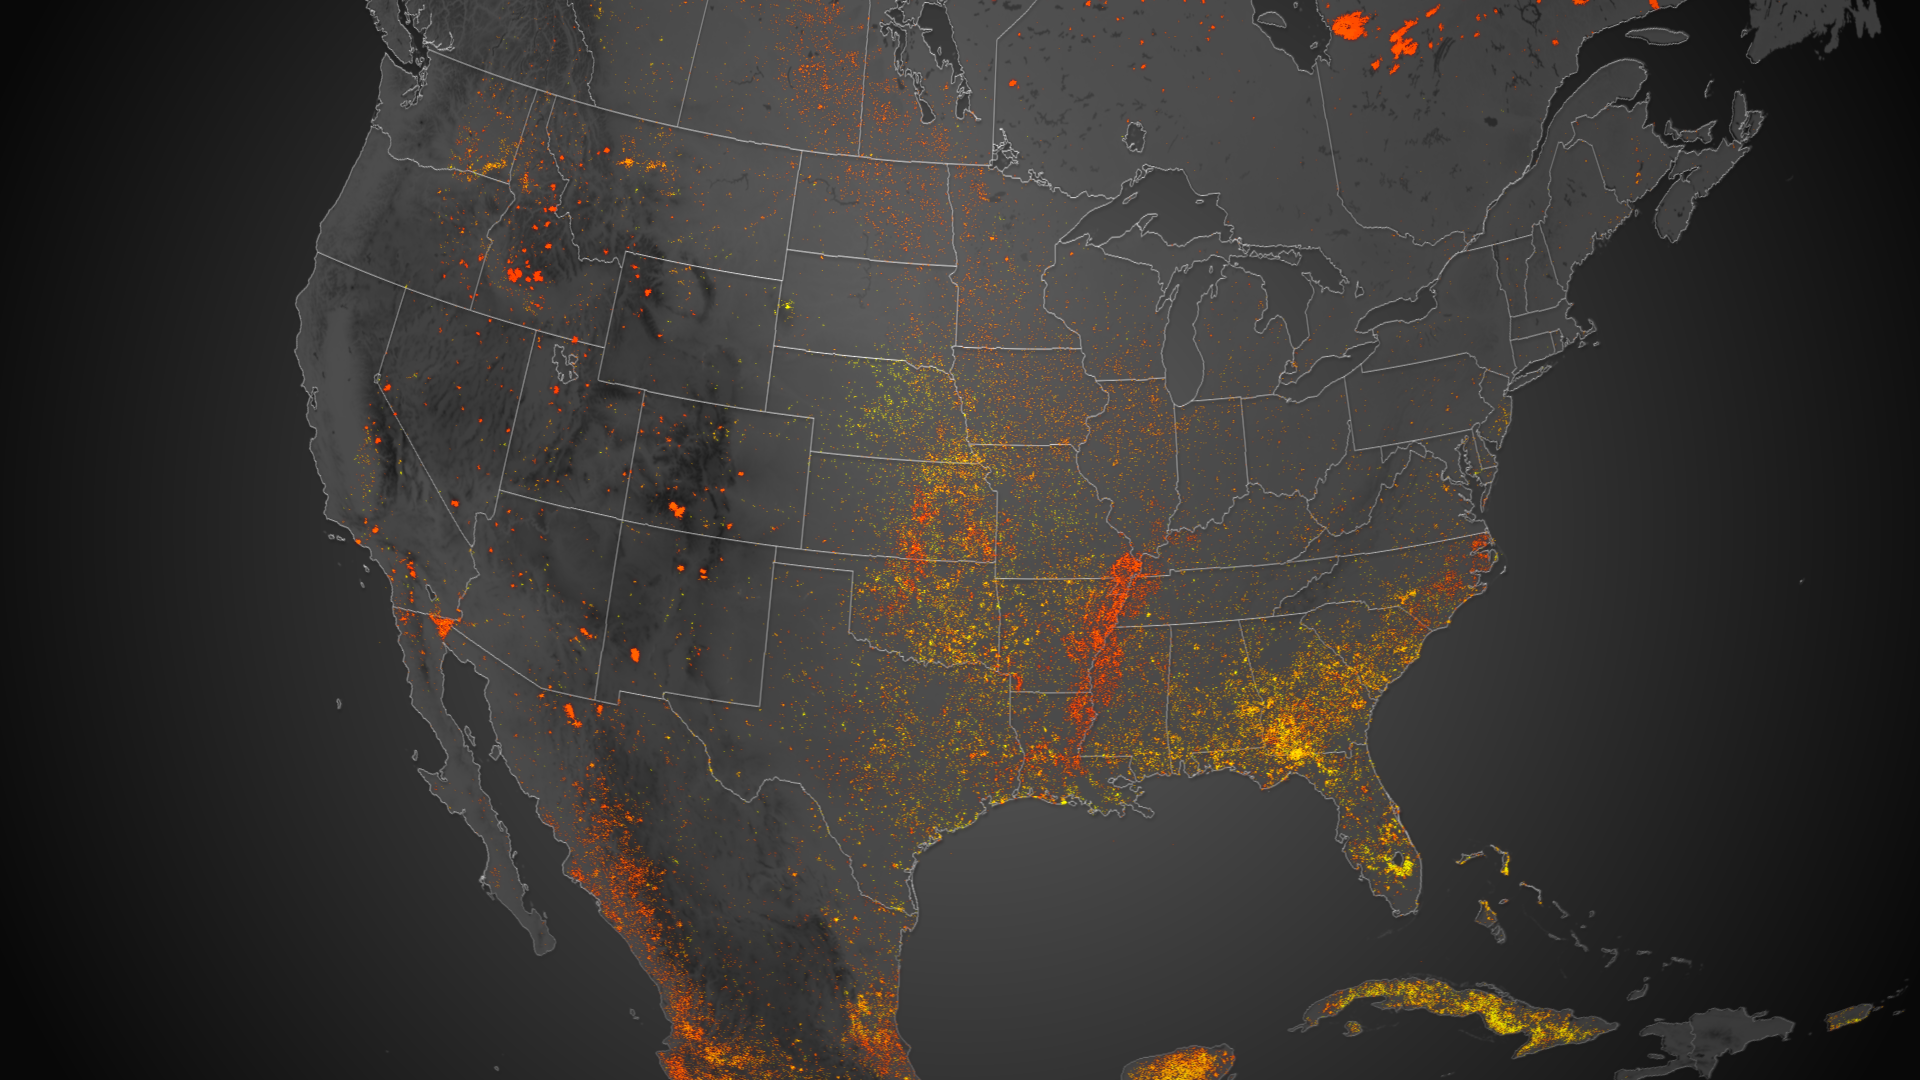 Continent on Fire Map Shows 6 Months of Wildfires Burning North 1920x1080